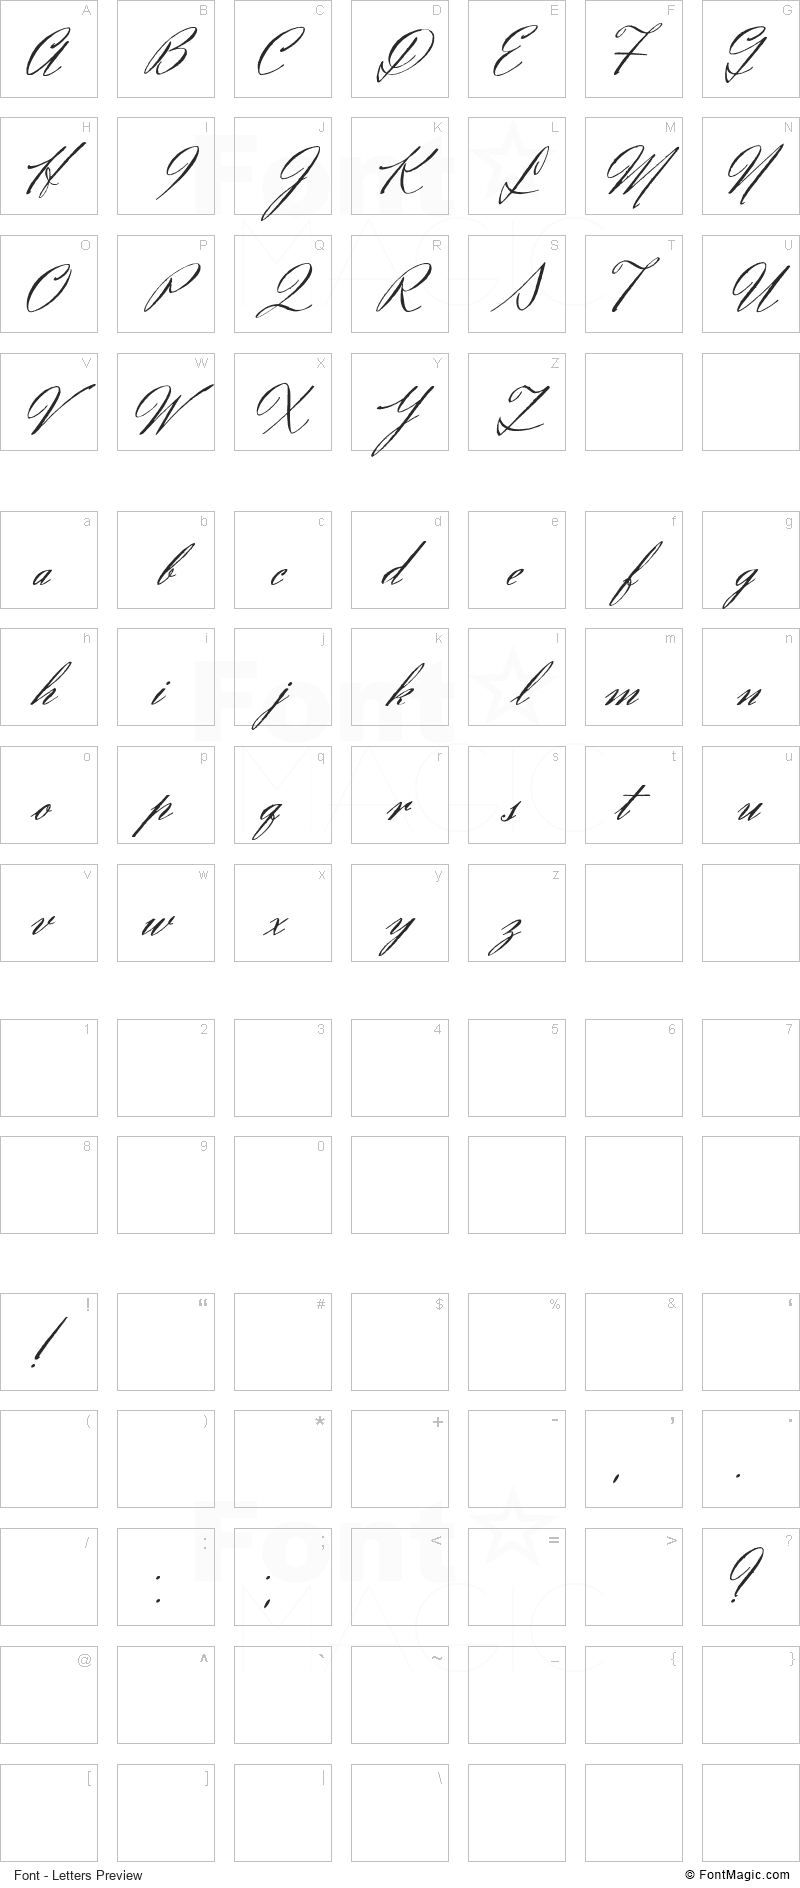 Eliensee Font - All Latters Preview Chart